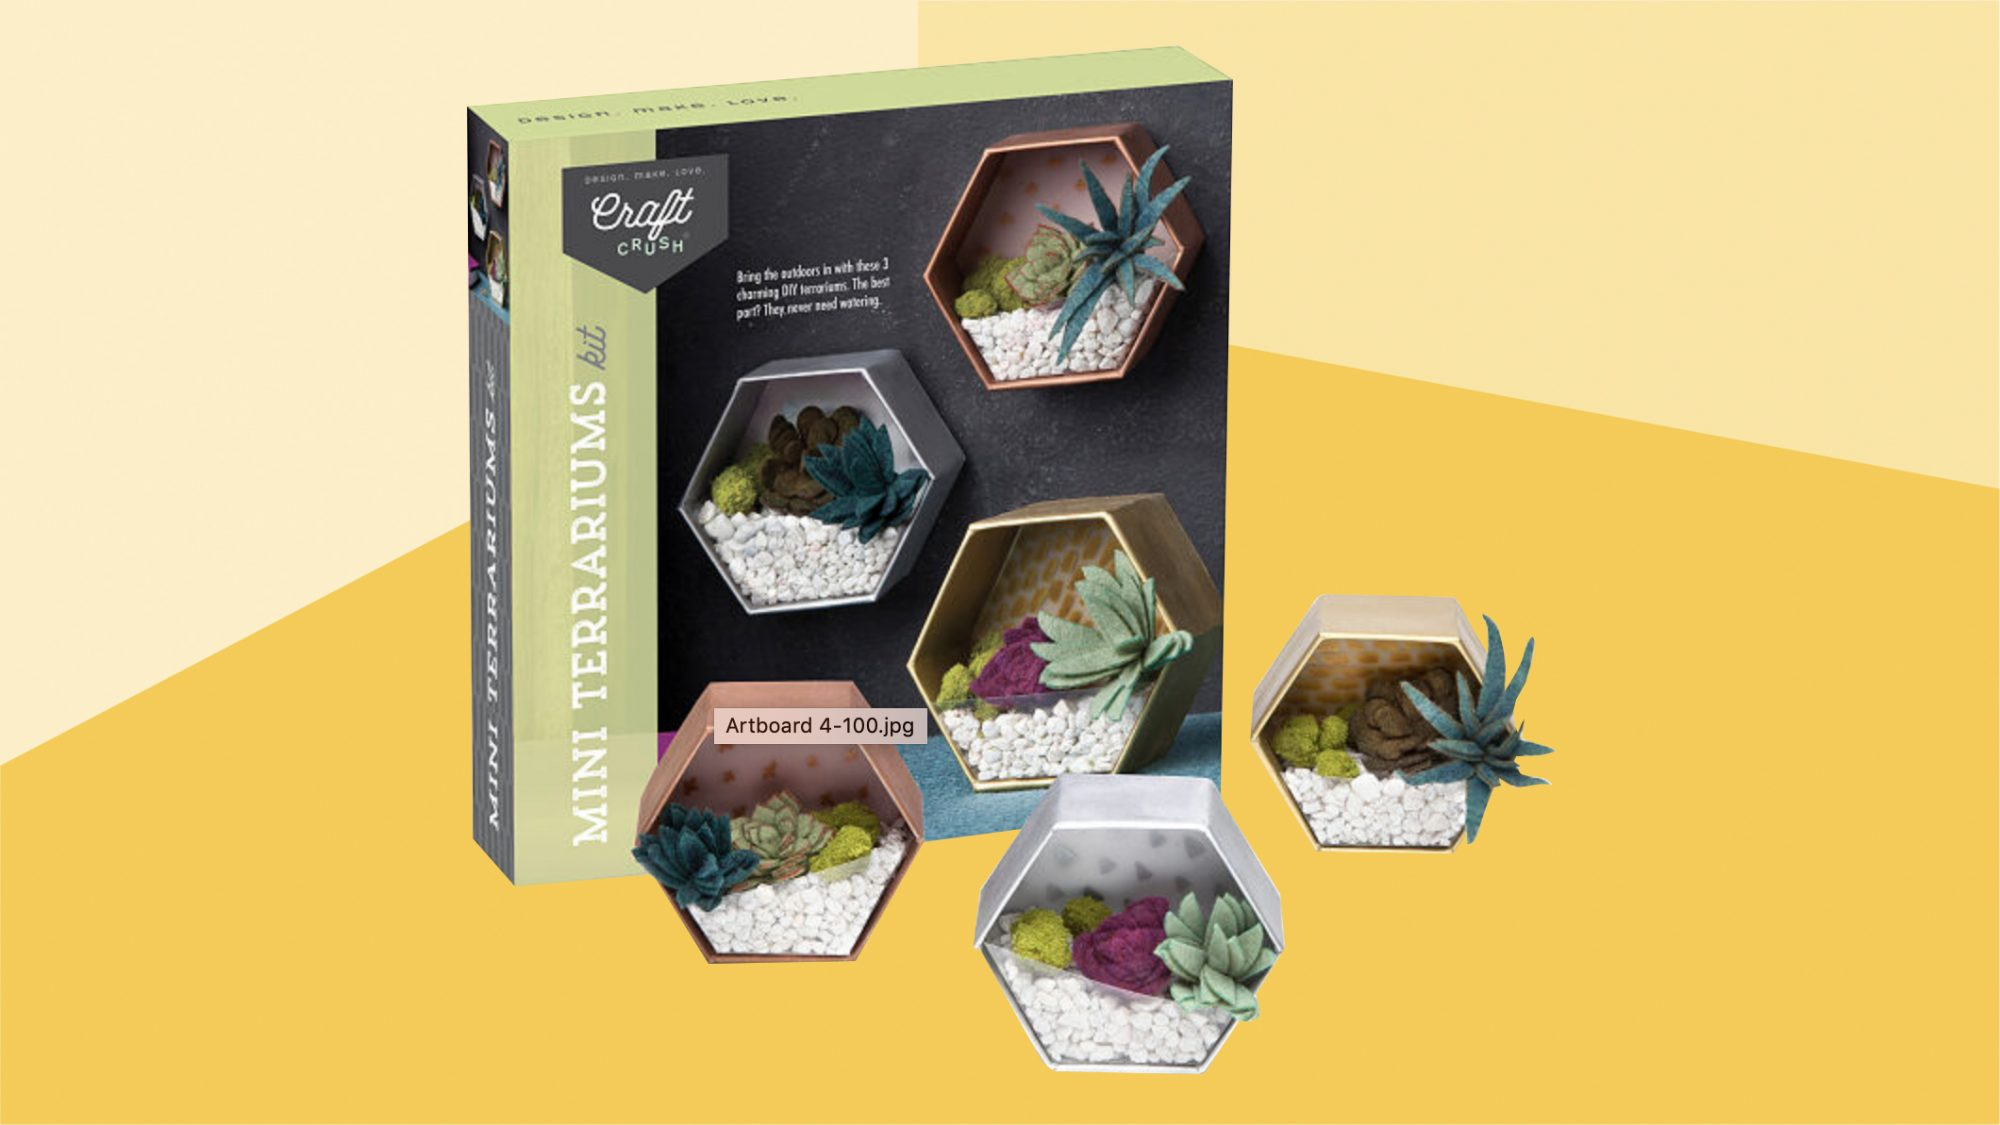 tween-teen-gifts: Mini Terrarium DIY Kit